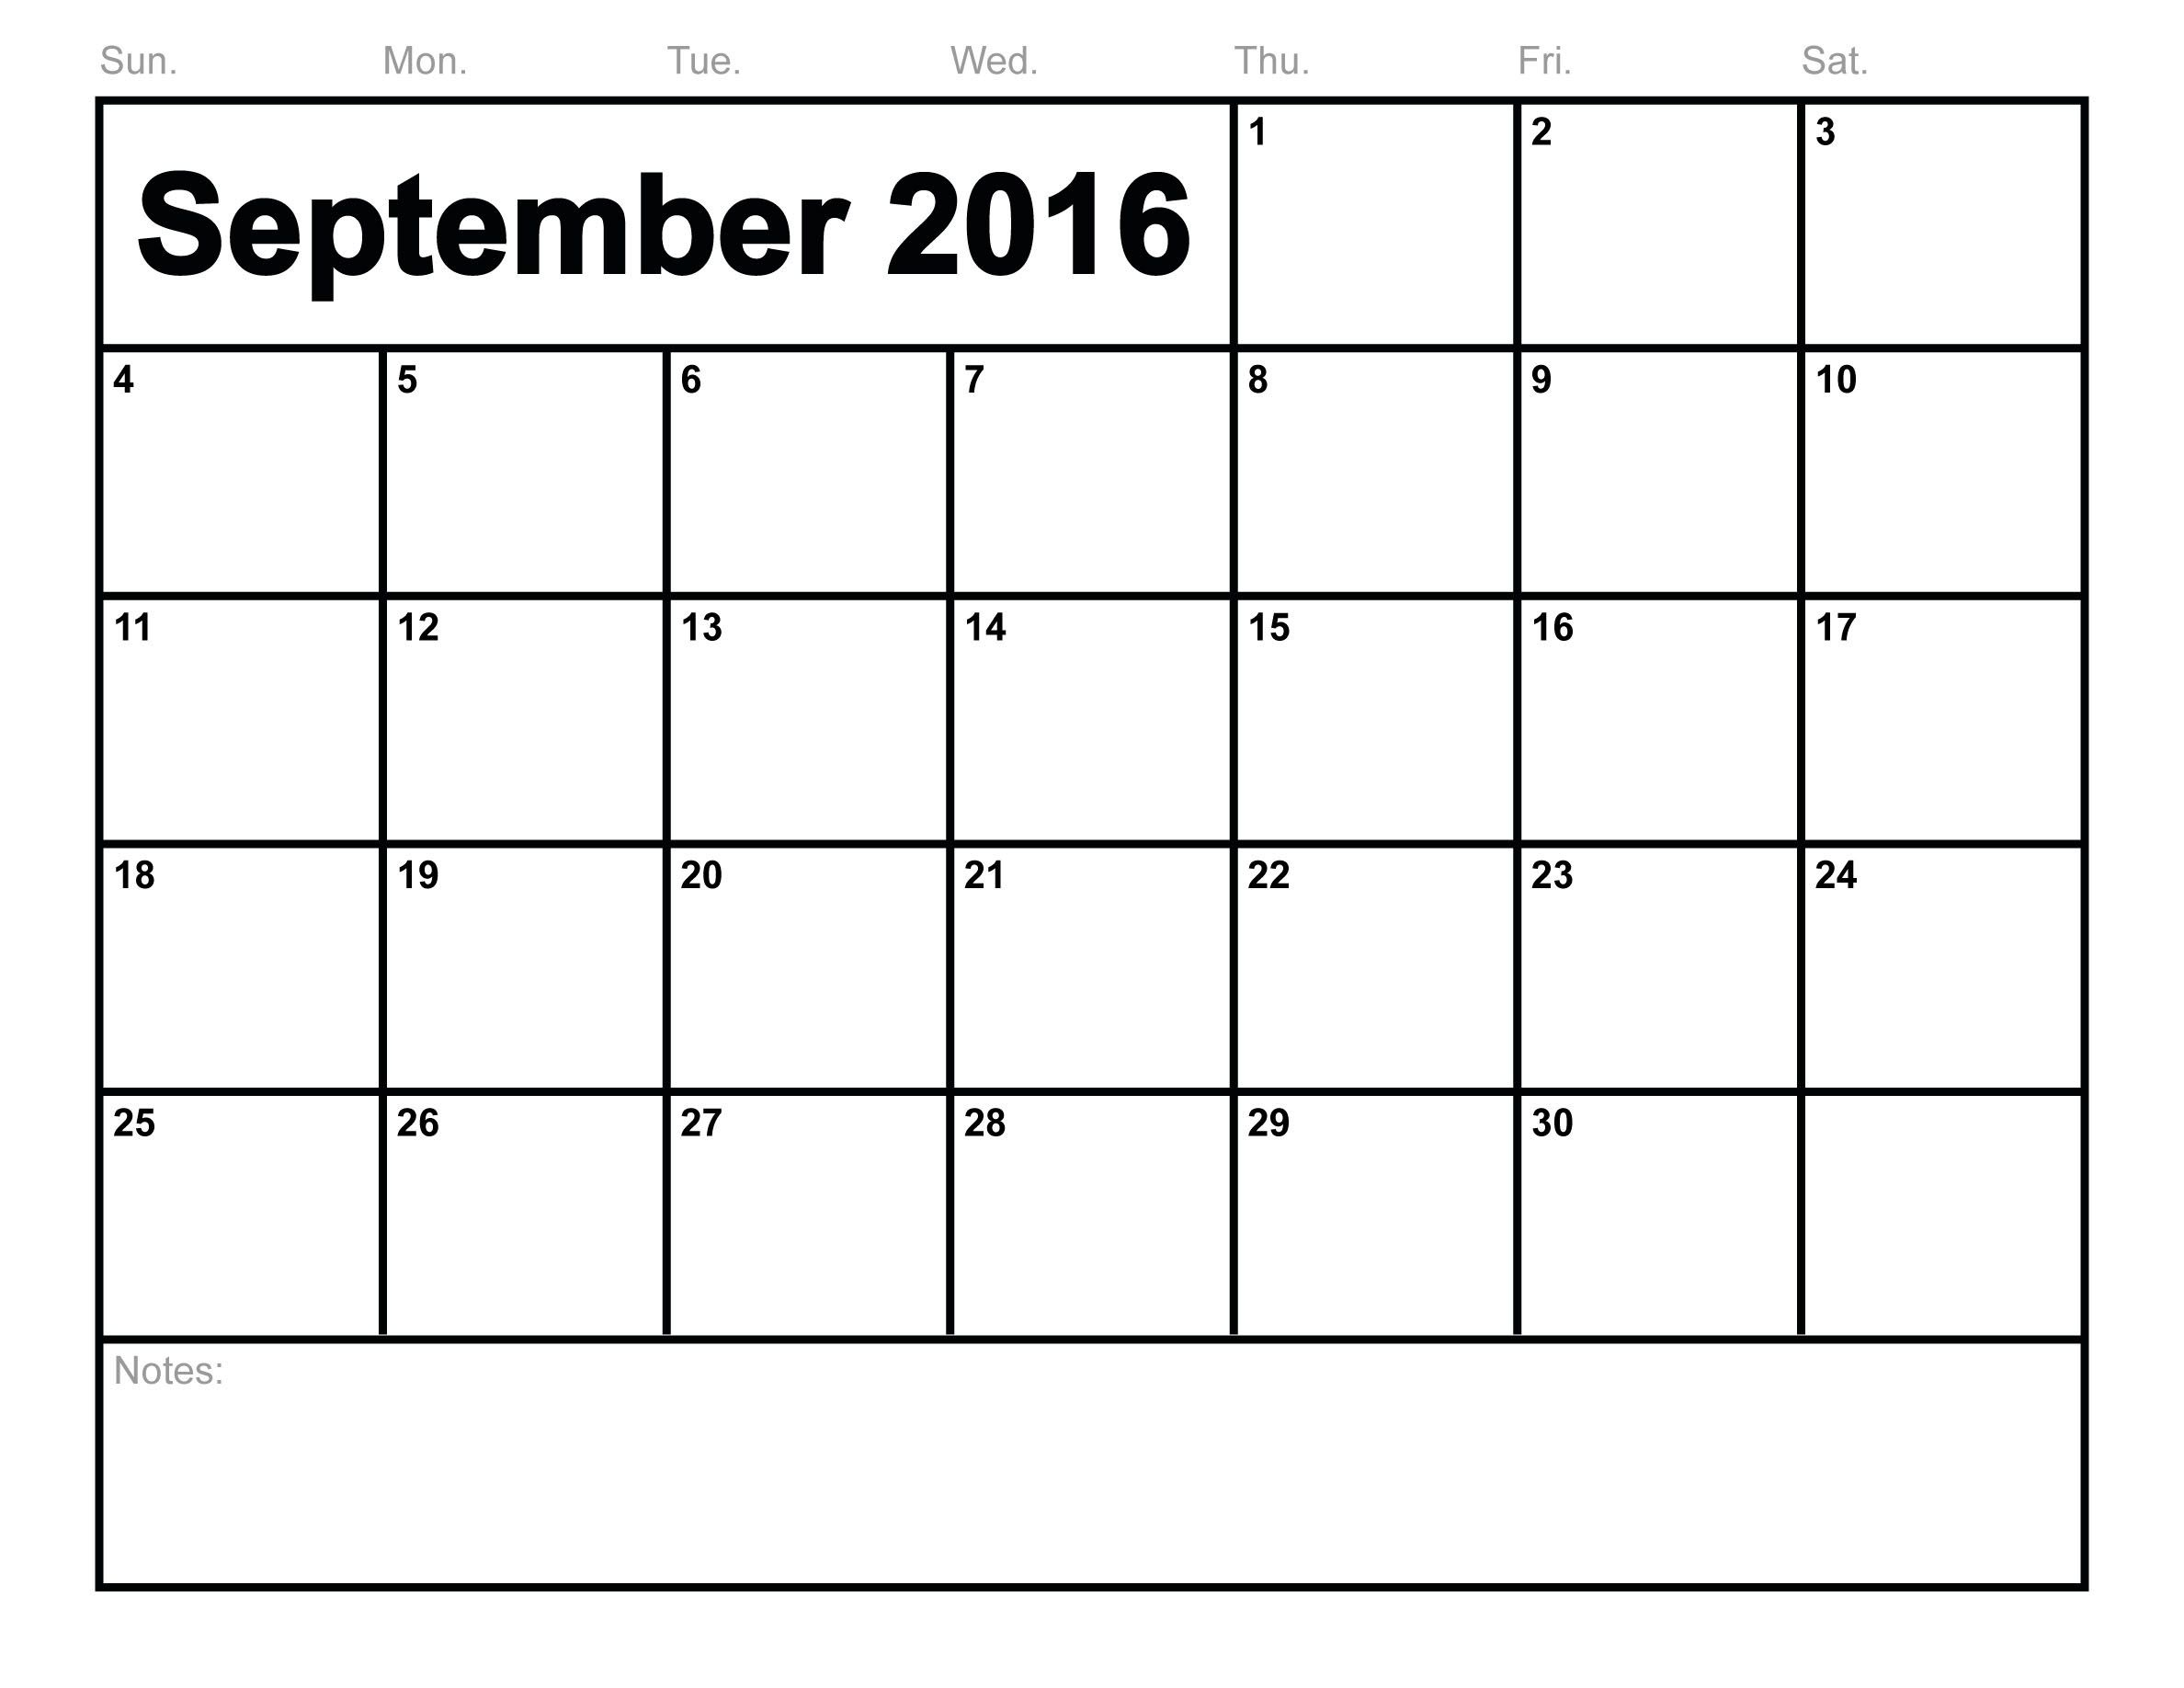 2016 September Month Calendar Template Page | Calendar Template 2019 with Blank Calendar Print-Outs Fill In Sept